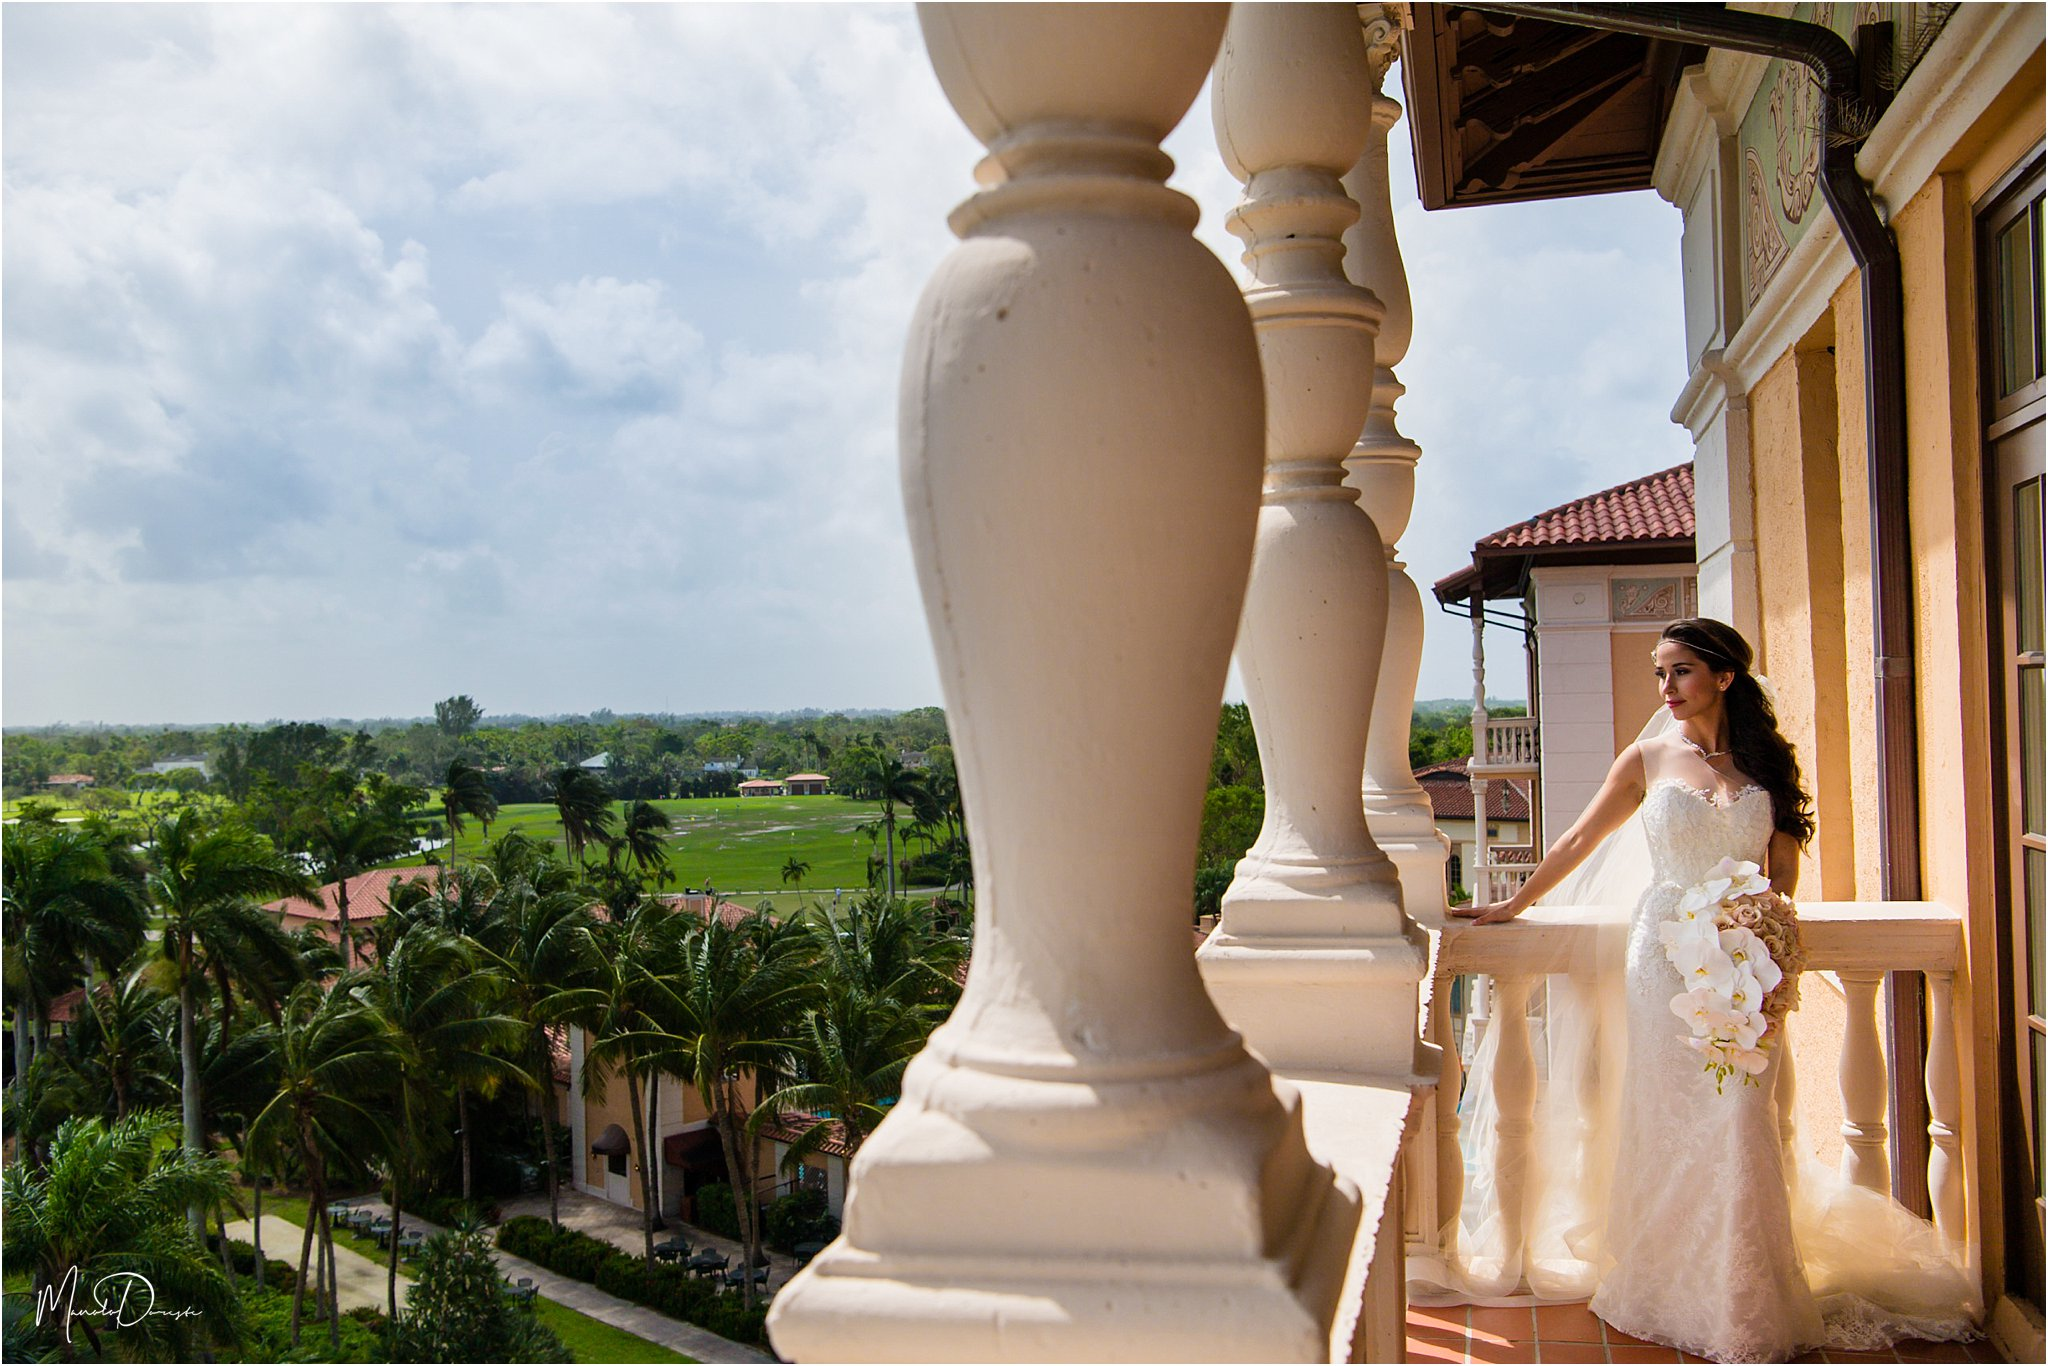 0155_ManoloDoreste_InFocusStudios_Wedding_Family_Photography_Miami_MiamiPhotographer.jpg